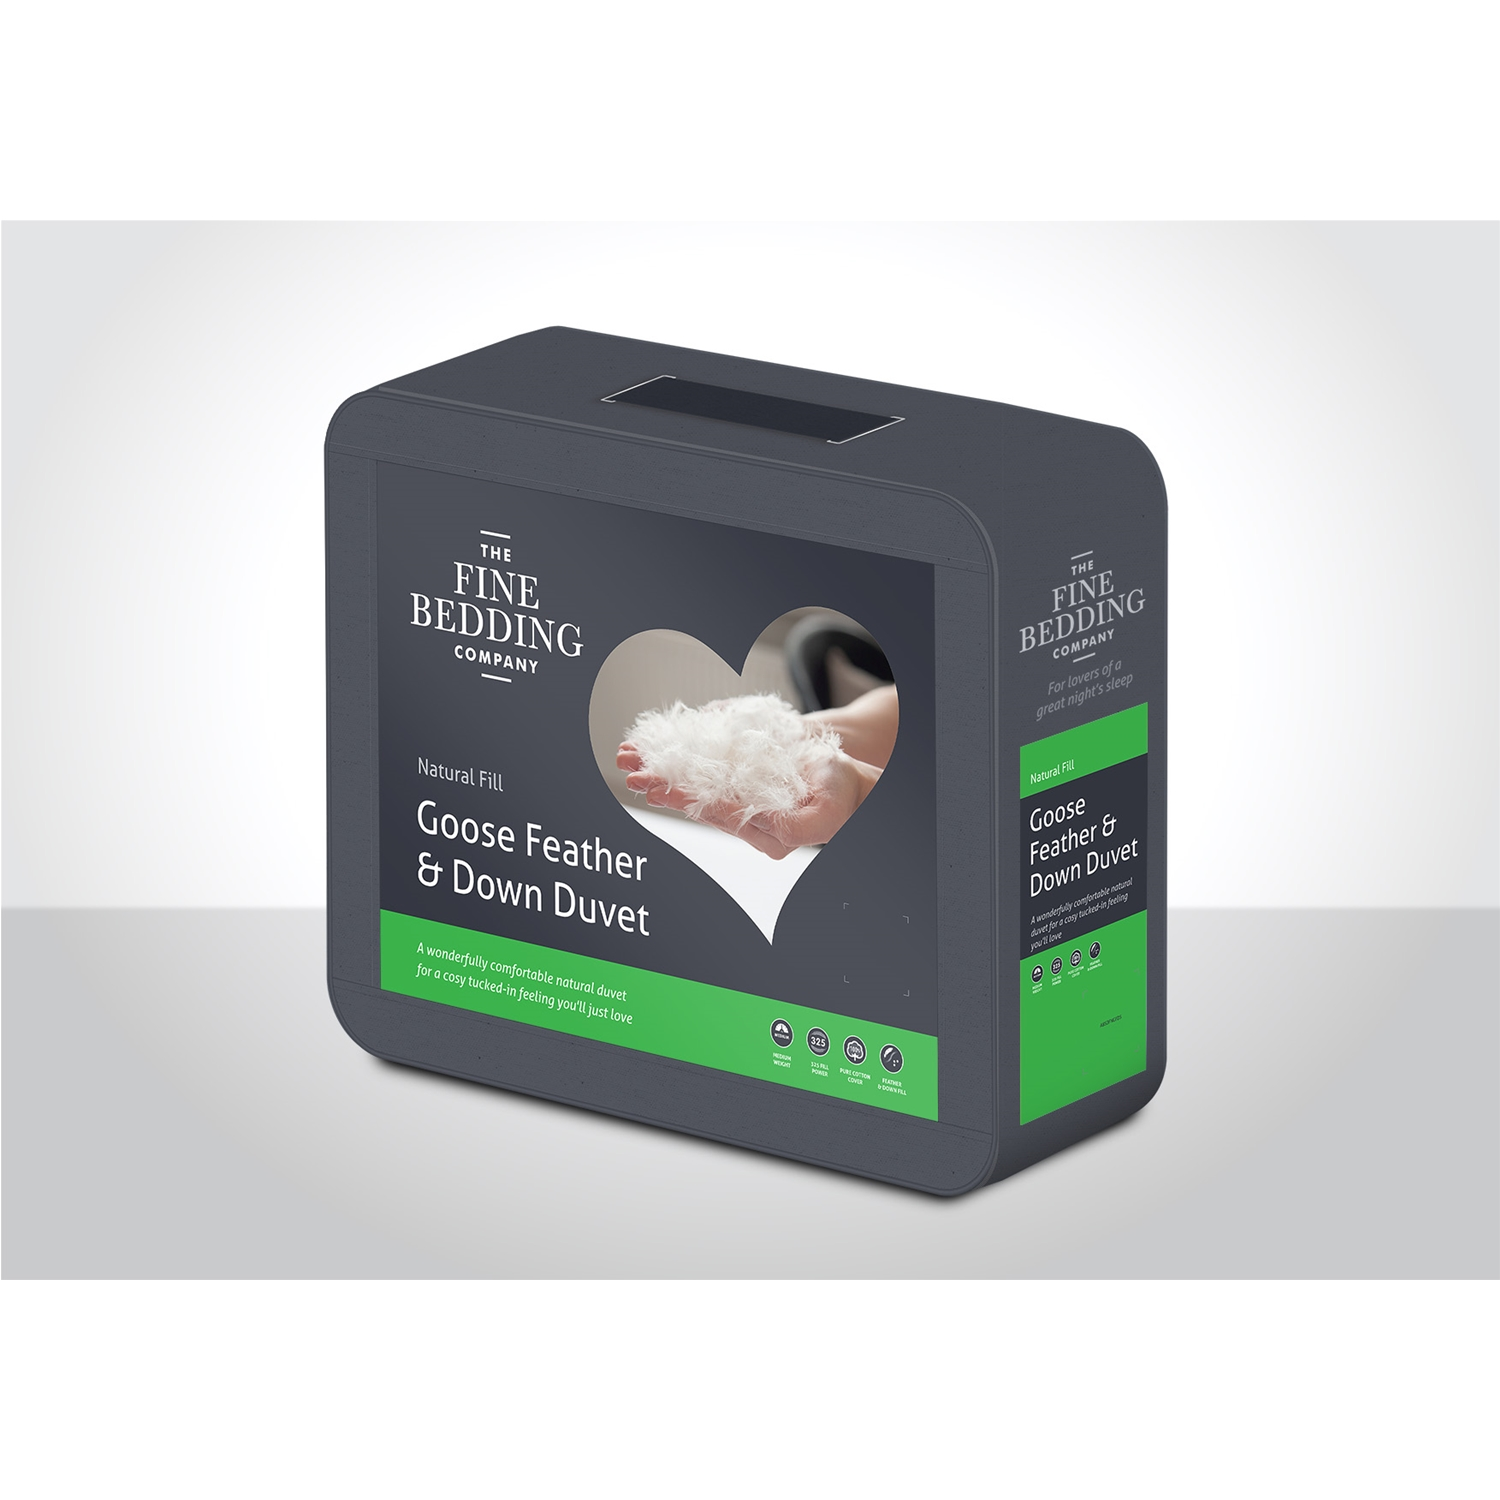 Image of Fine Bedding Company Goose Feather & Down Duvet, 13.5 Tog, Single